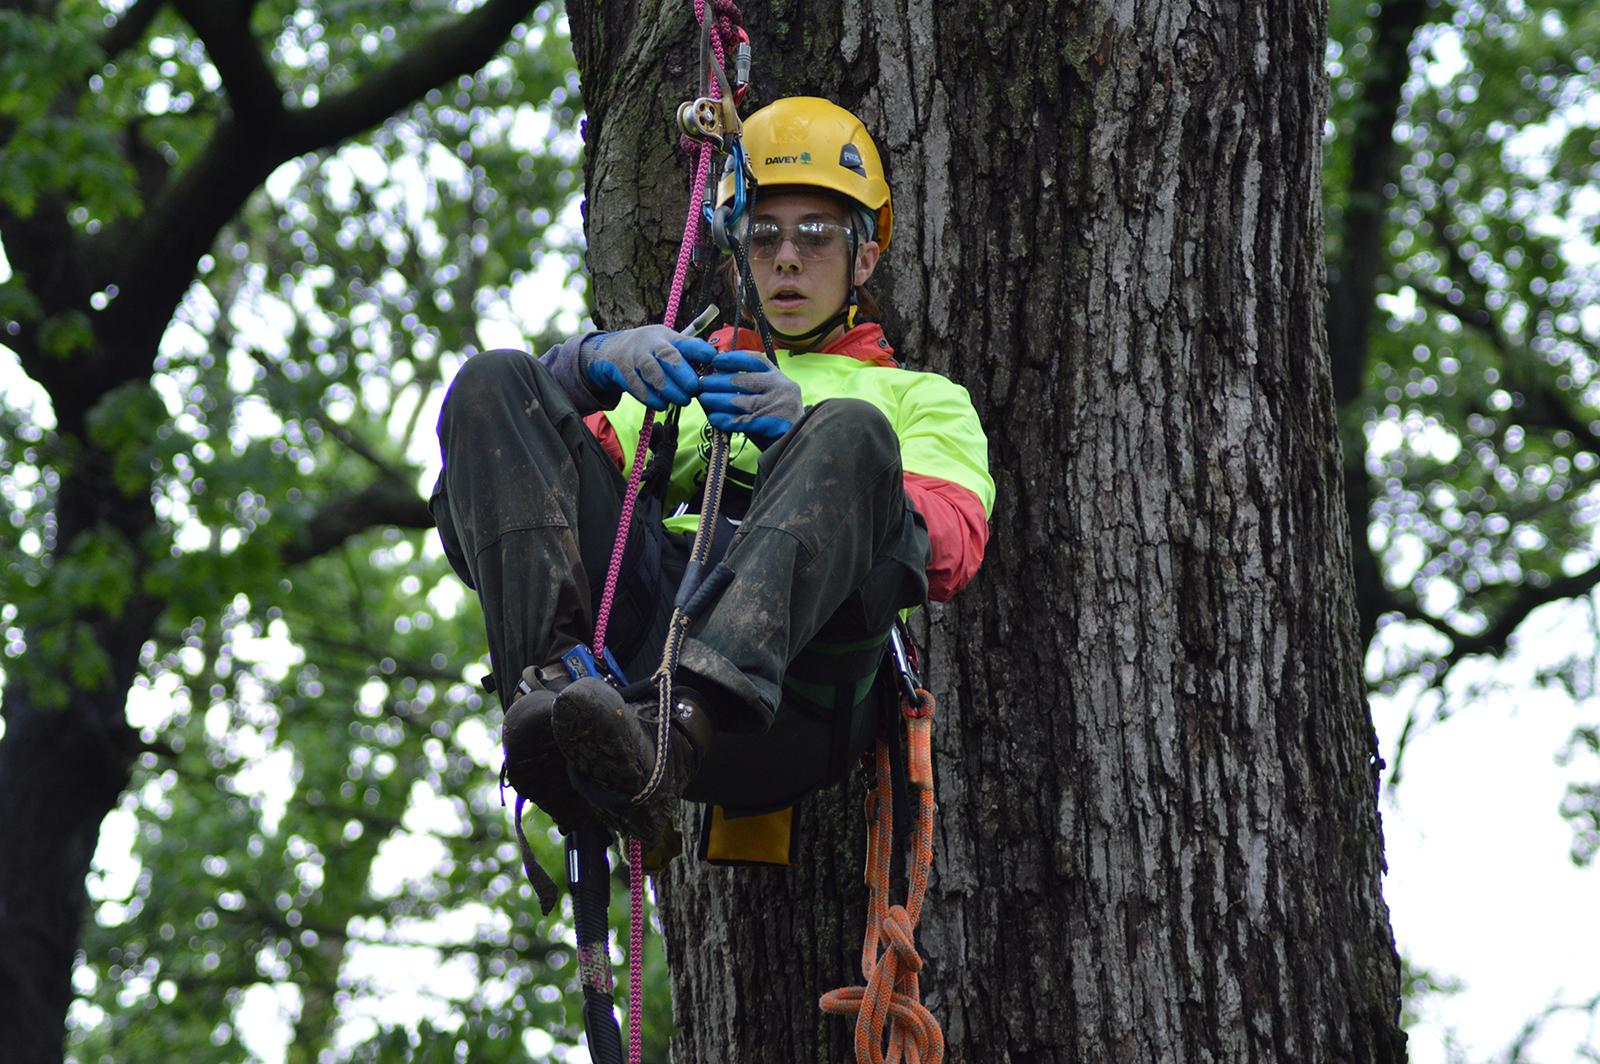 Saturday's event includes a climbing demonstration for kids. (April Toney / Illinois Arborist Association)